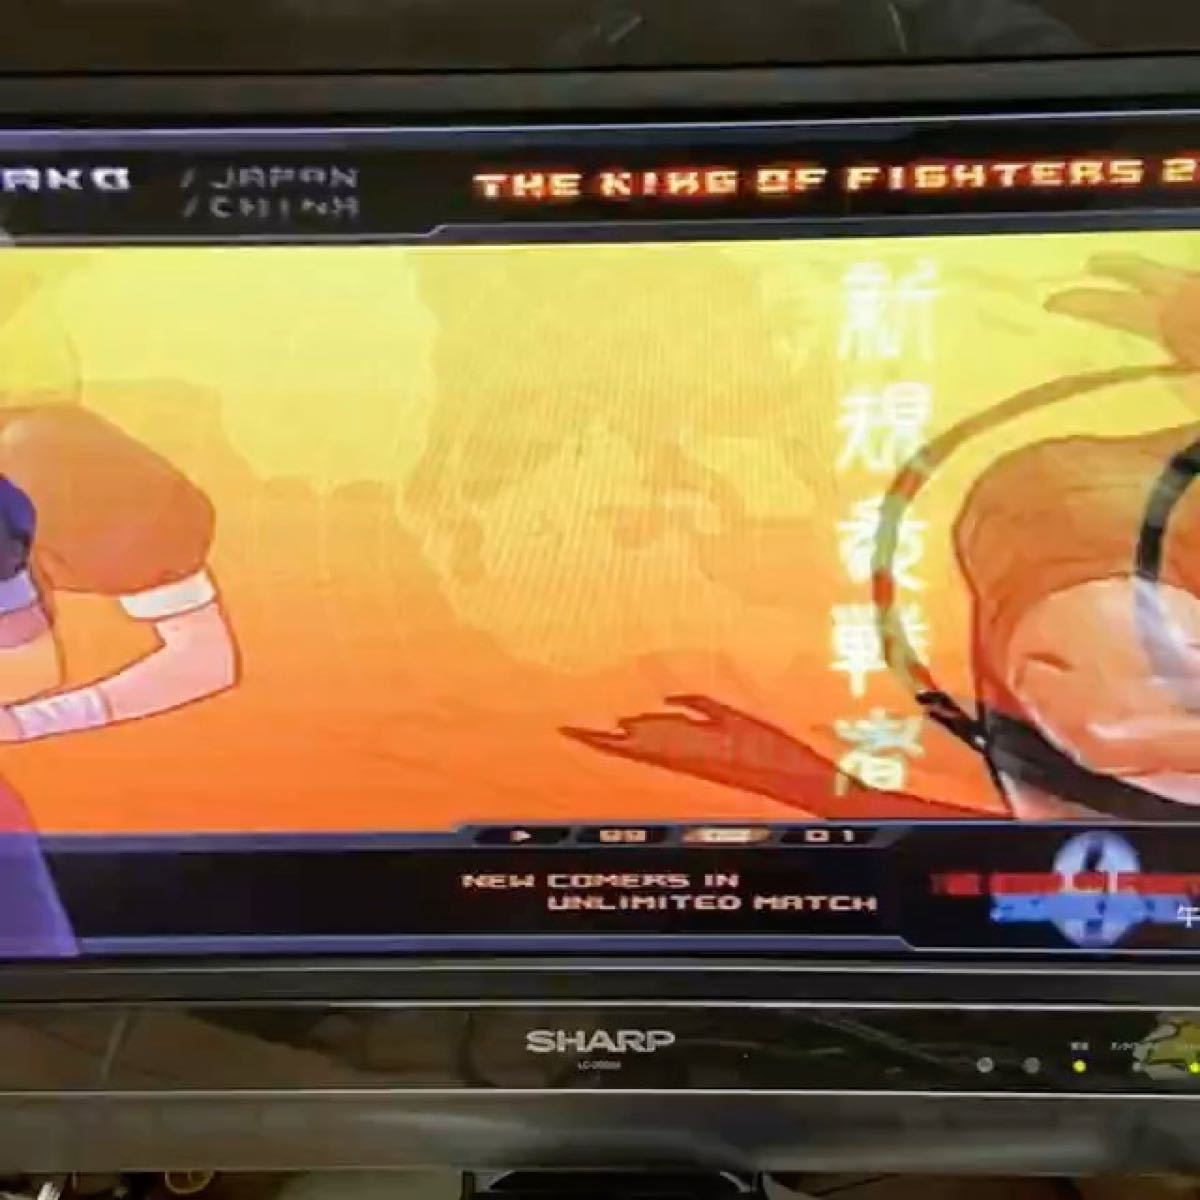 PS2 THE KING OF FIGHTERS 2002 UNLIMITED MATCH 闘劇ver.